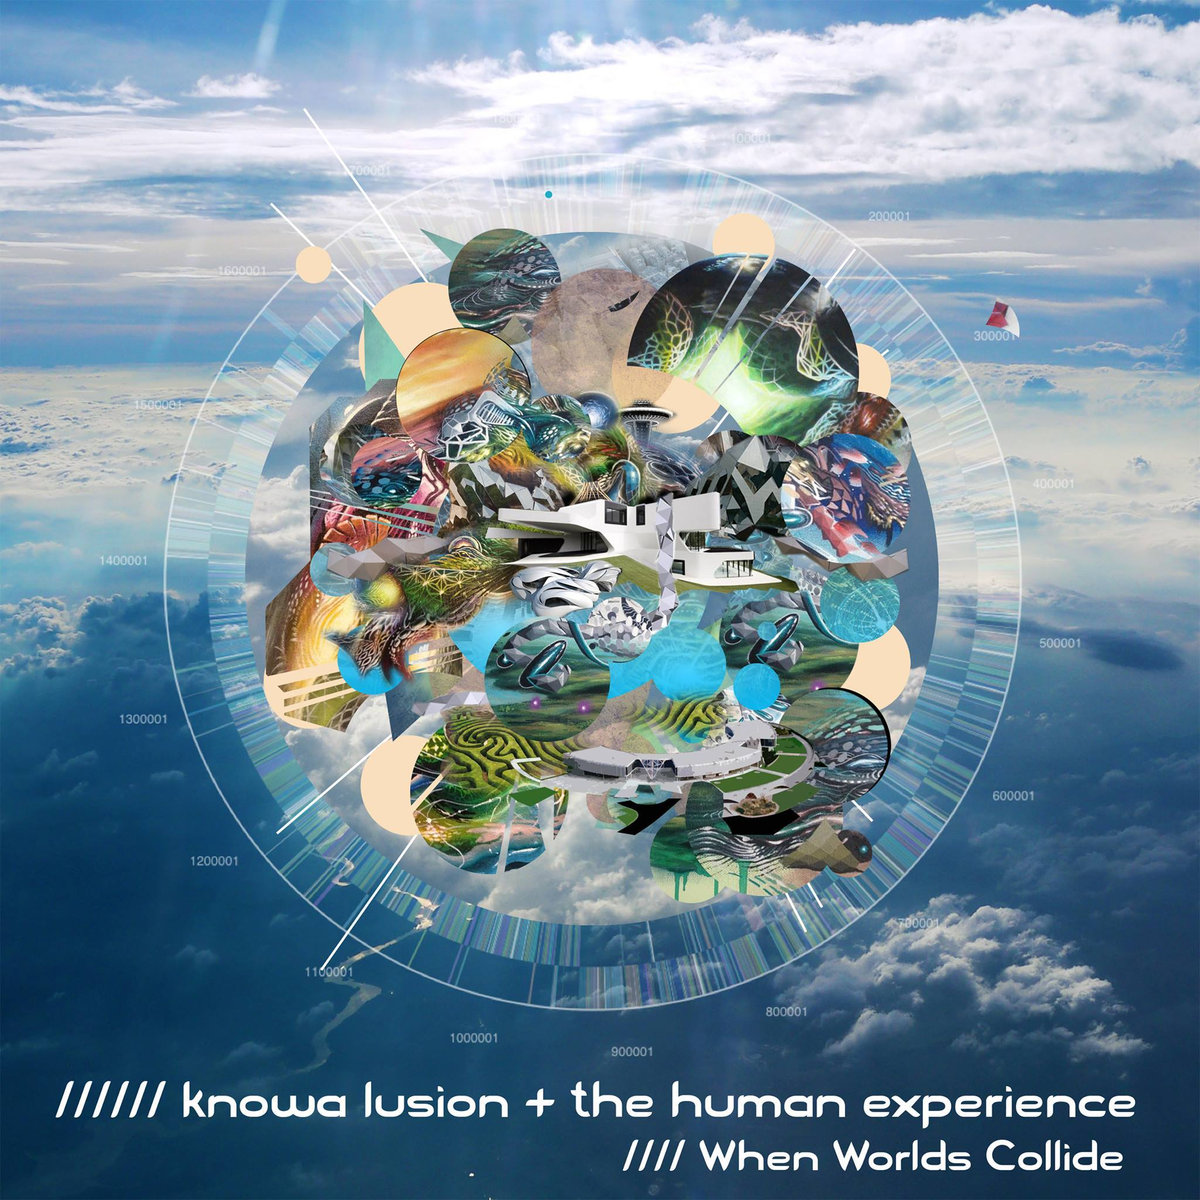 Knowa Lusion and The Human Experience - When Worlds Collide